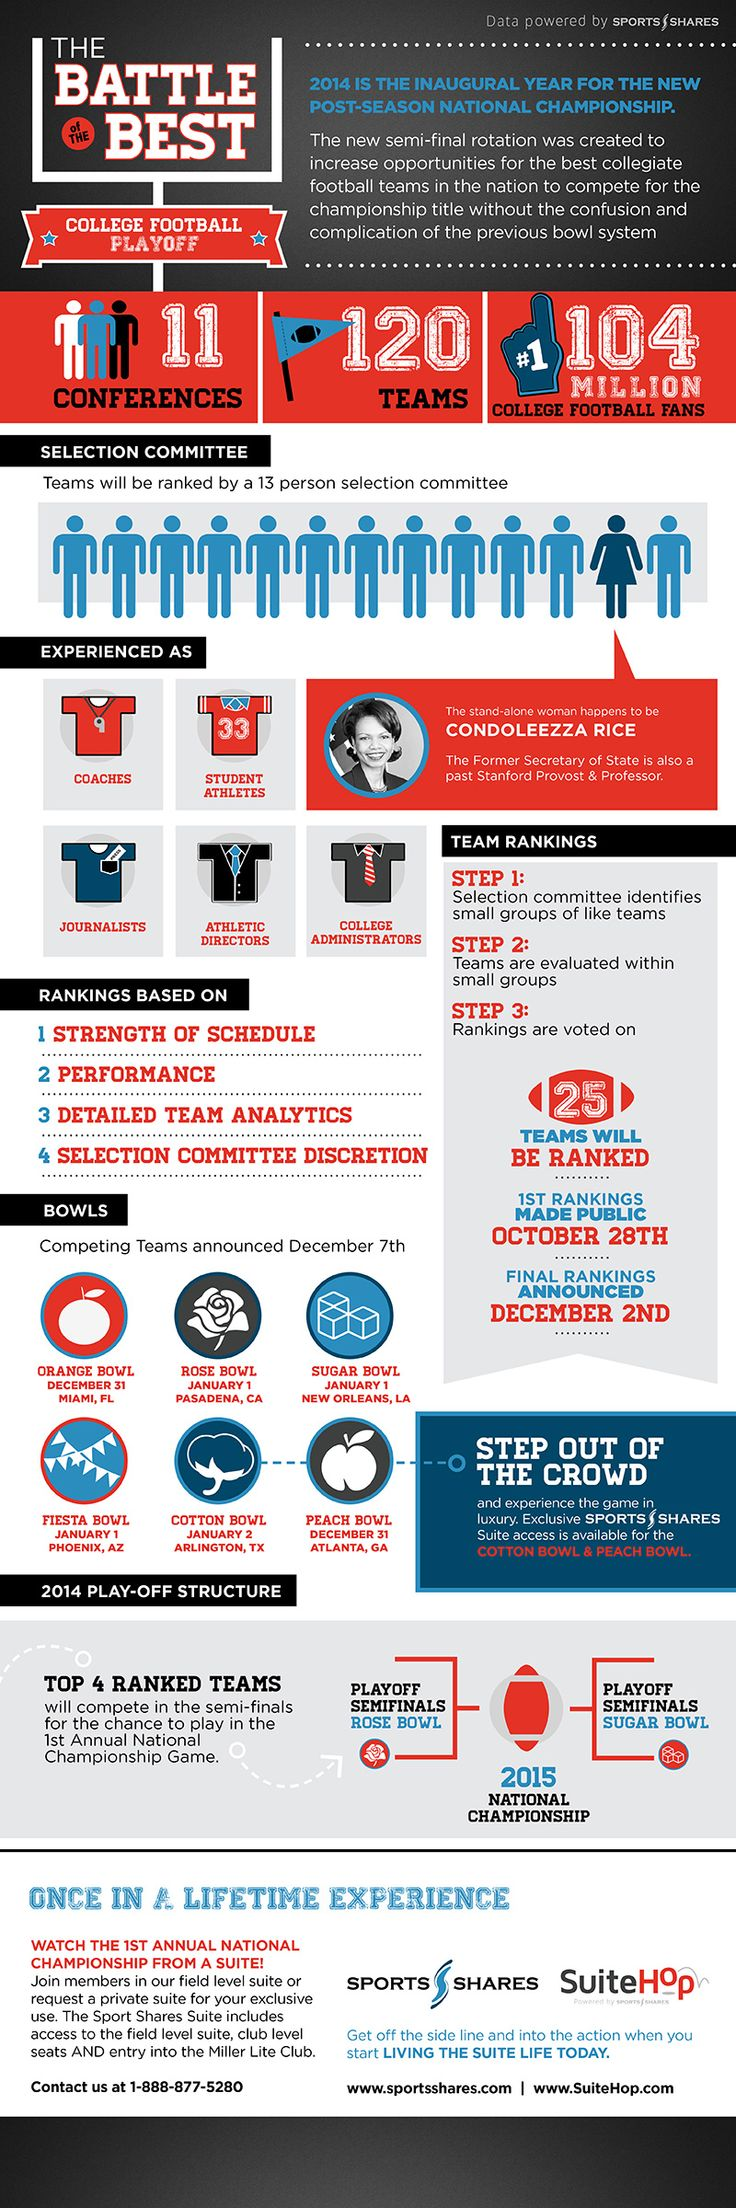 Battle of the Best: College Football Playoff - Do you fancy an infographic? There are a lot of them online, but if you want your own please visit http://www.linfografico.com/prezzi/ Online girano molte infografiche, se ne vuoi realizzare una tutta tua visita http://www.linfografico.com/prezzi/